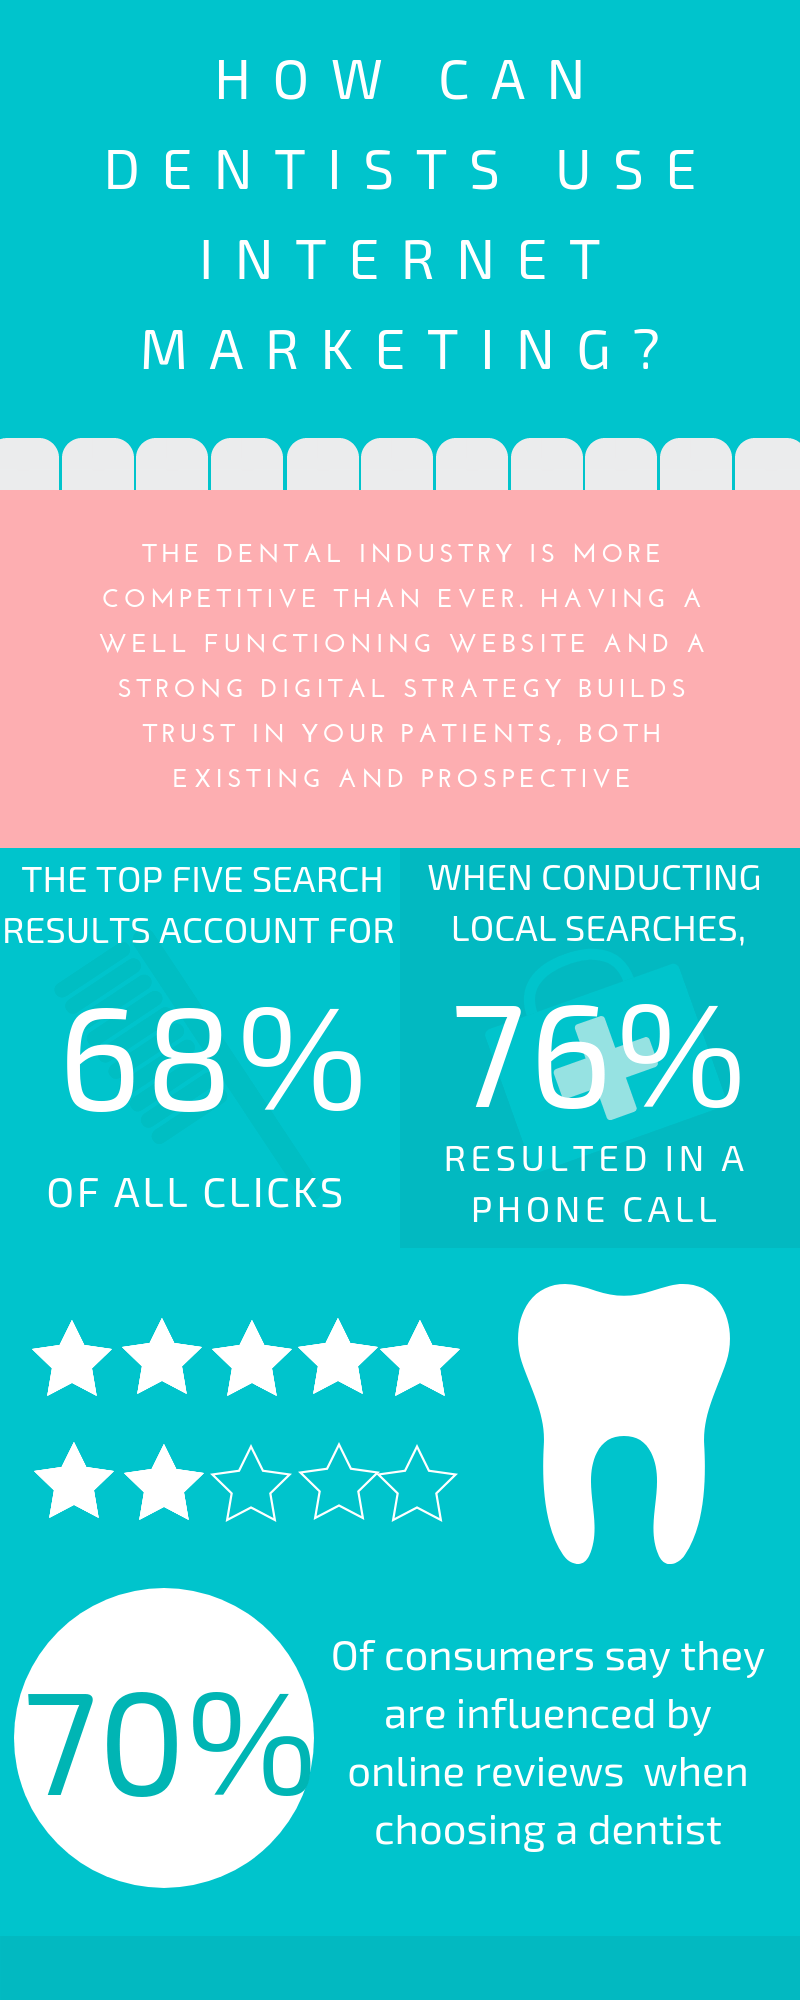 Digital Marketing for Dentists Infographic